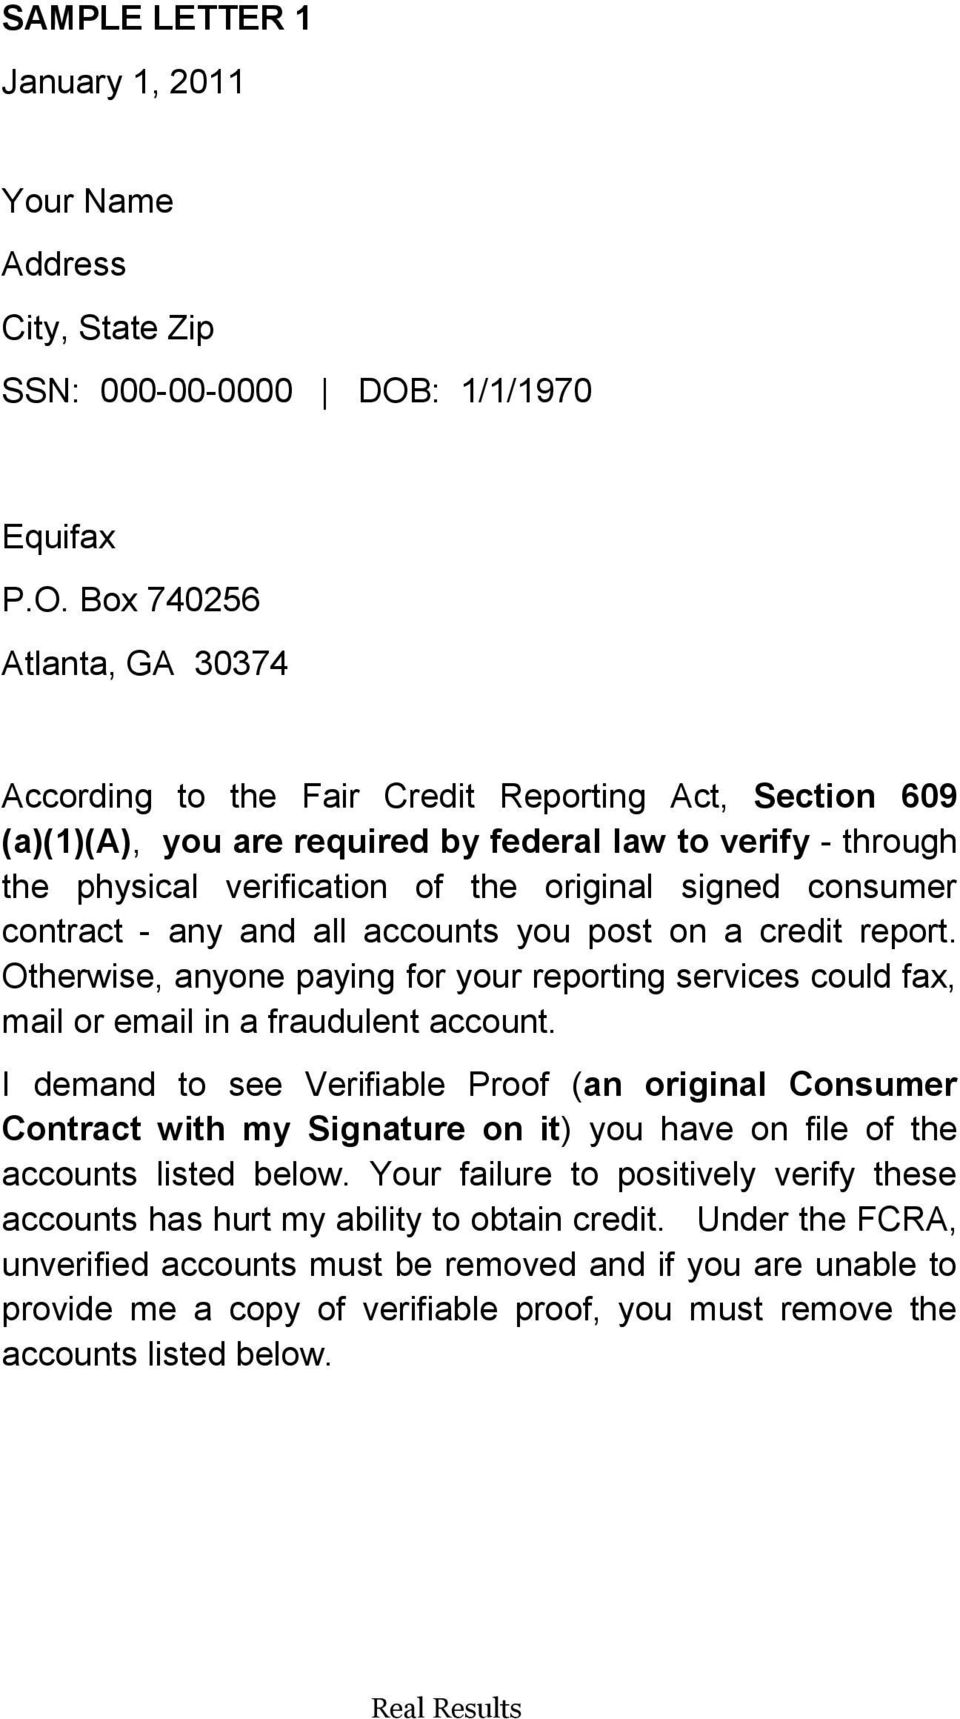 Section 609 Letter Altin Northeastfitness Co